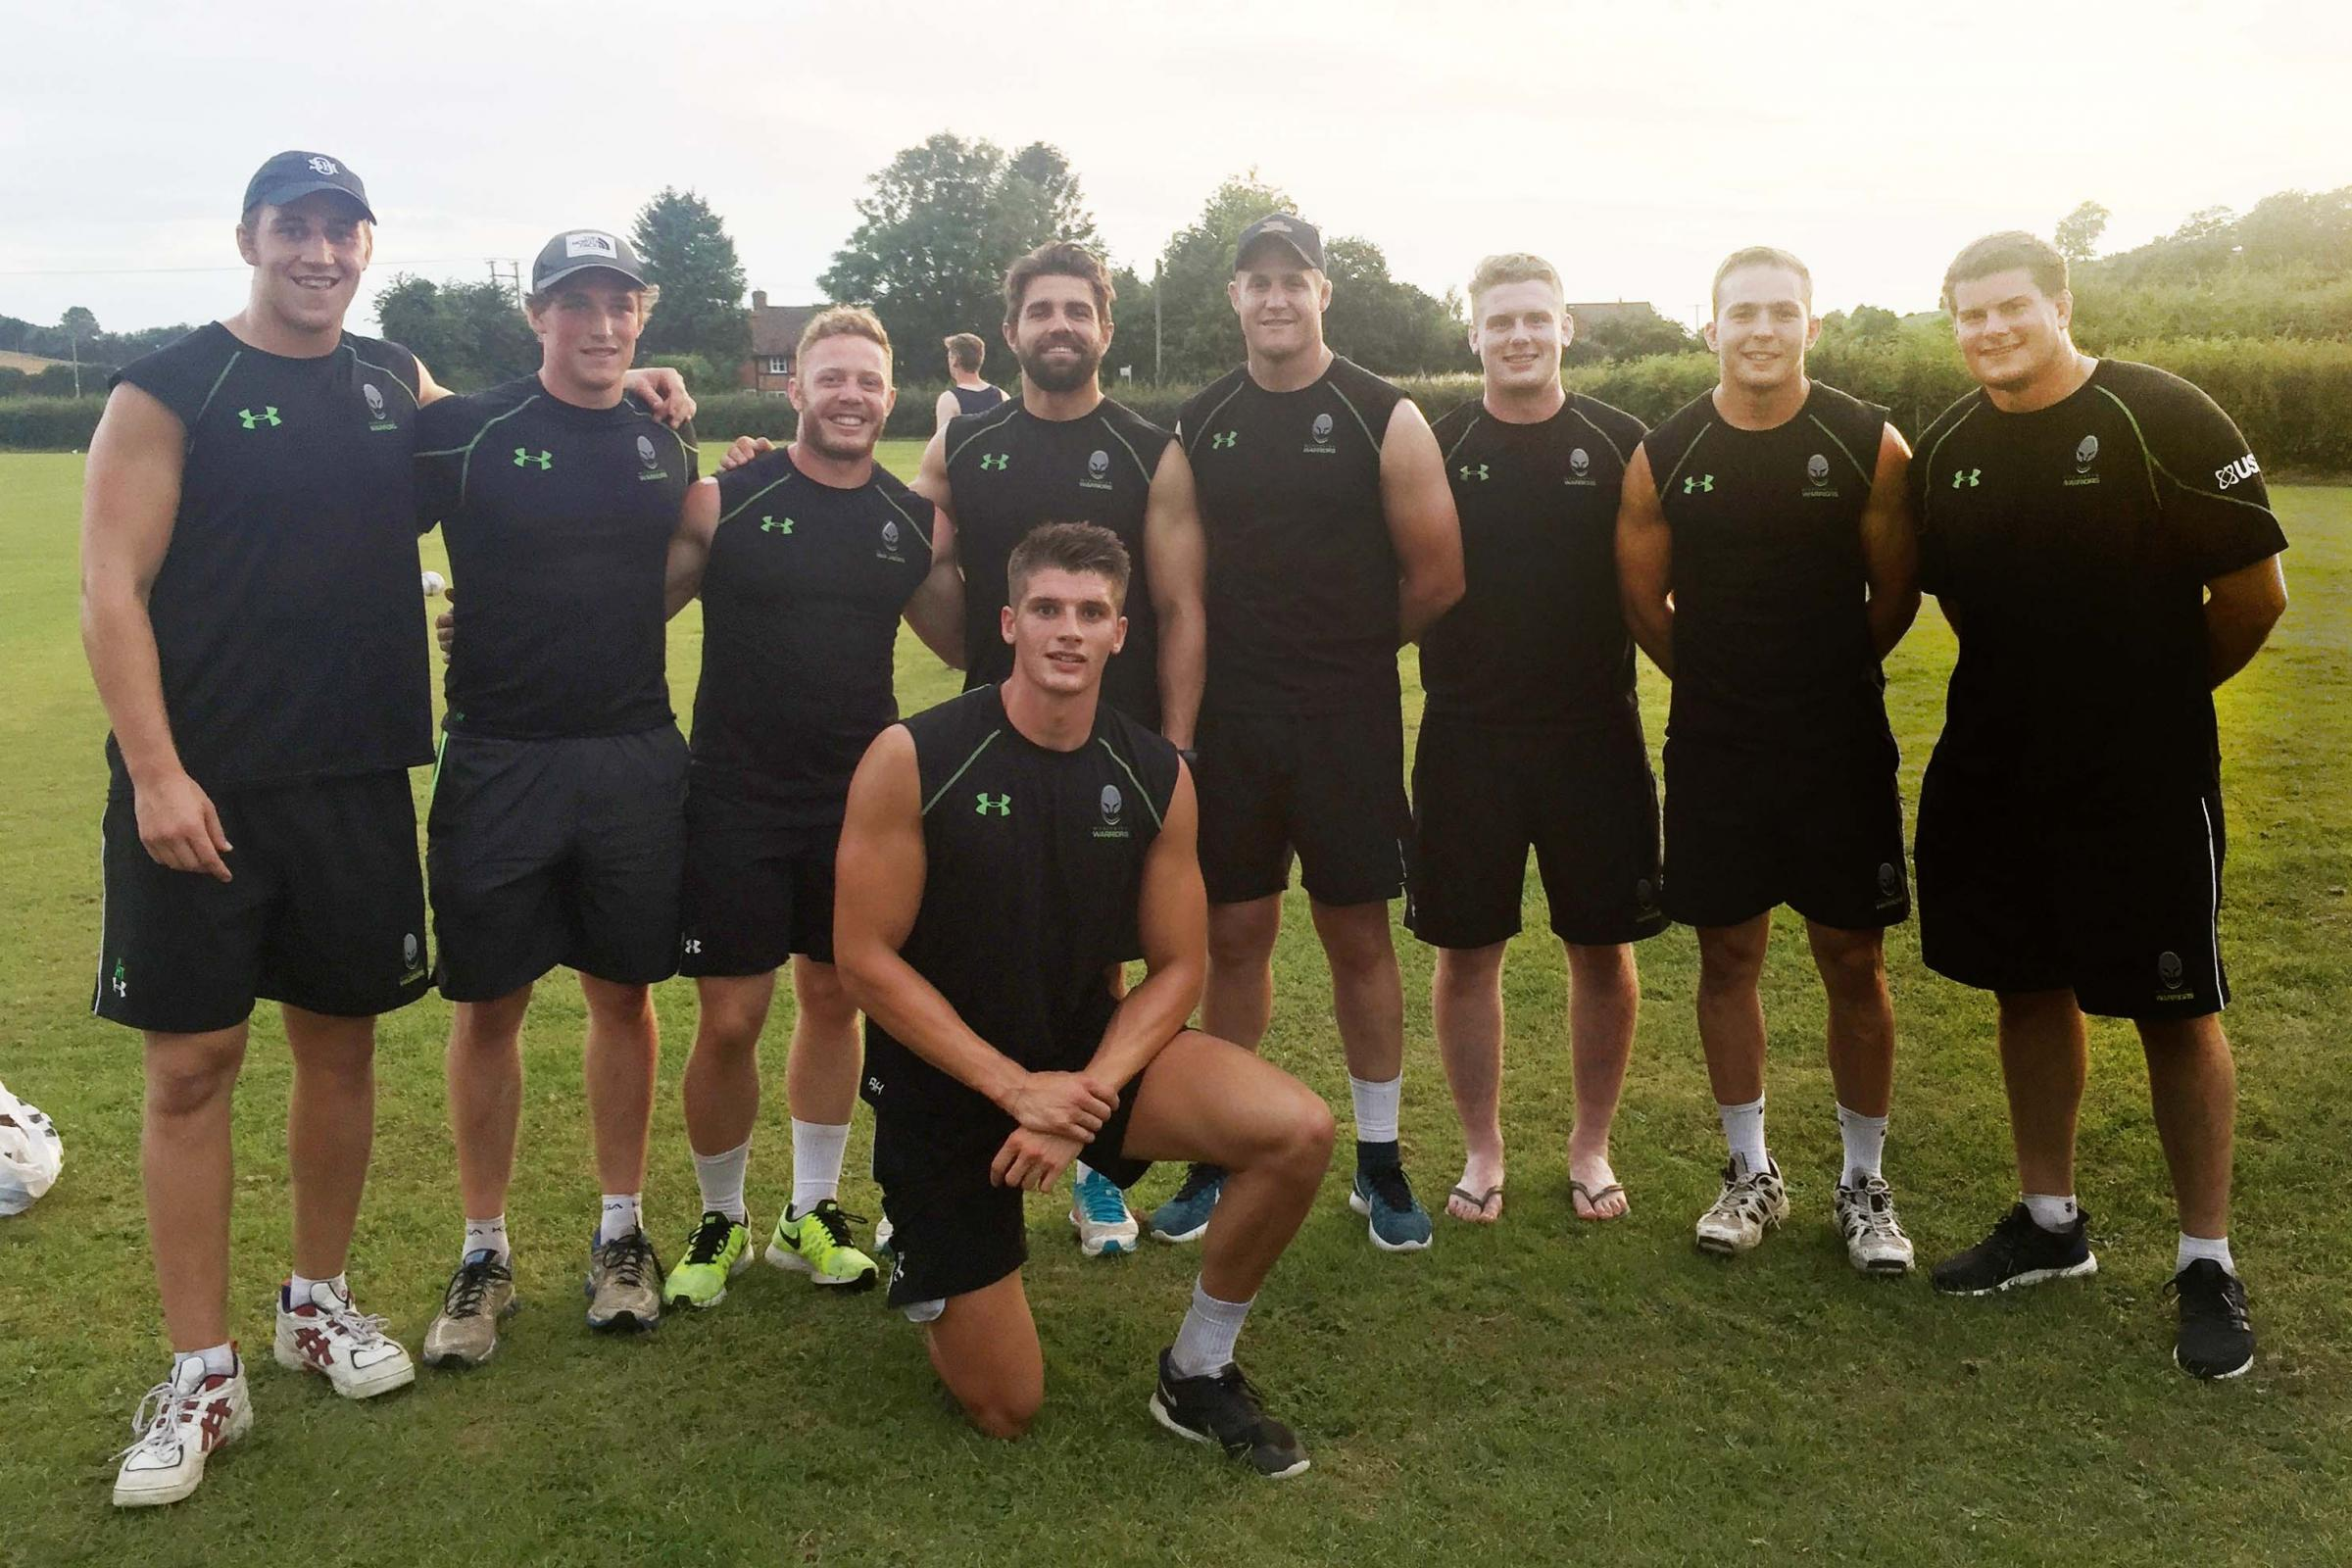 Fundraiser: Around 200 people watched Worcester Warriors' players triumph in a cricket match against Martley at Jewry Field on Tuesday.